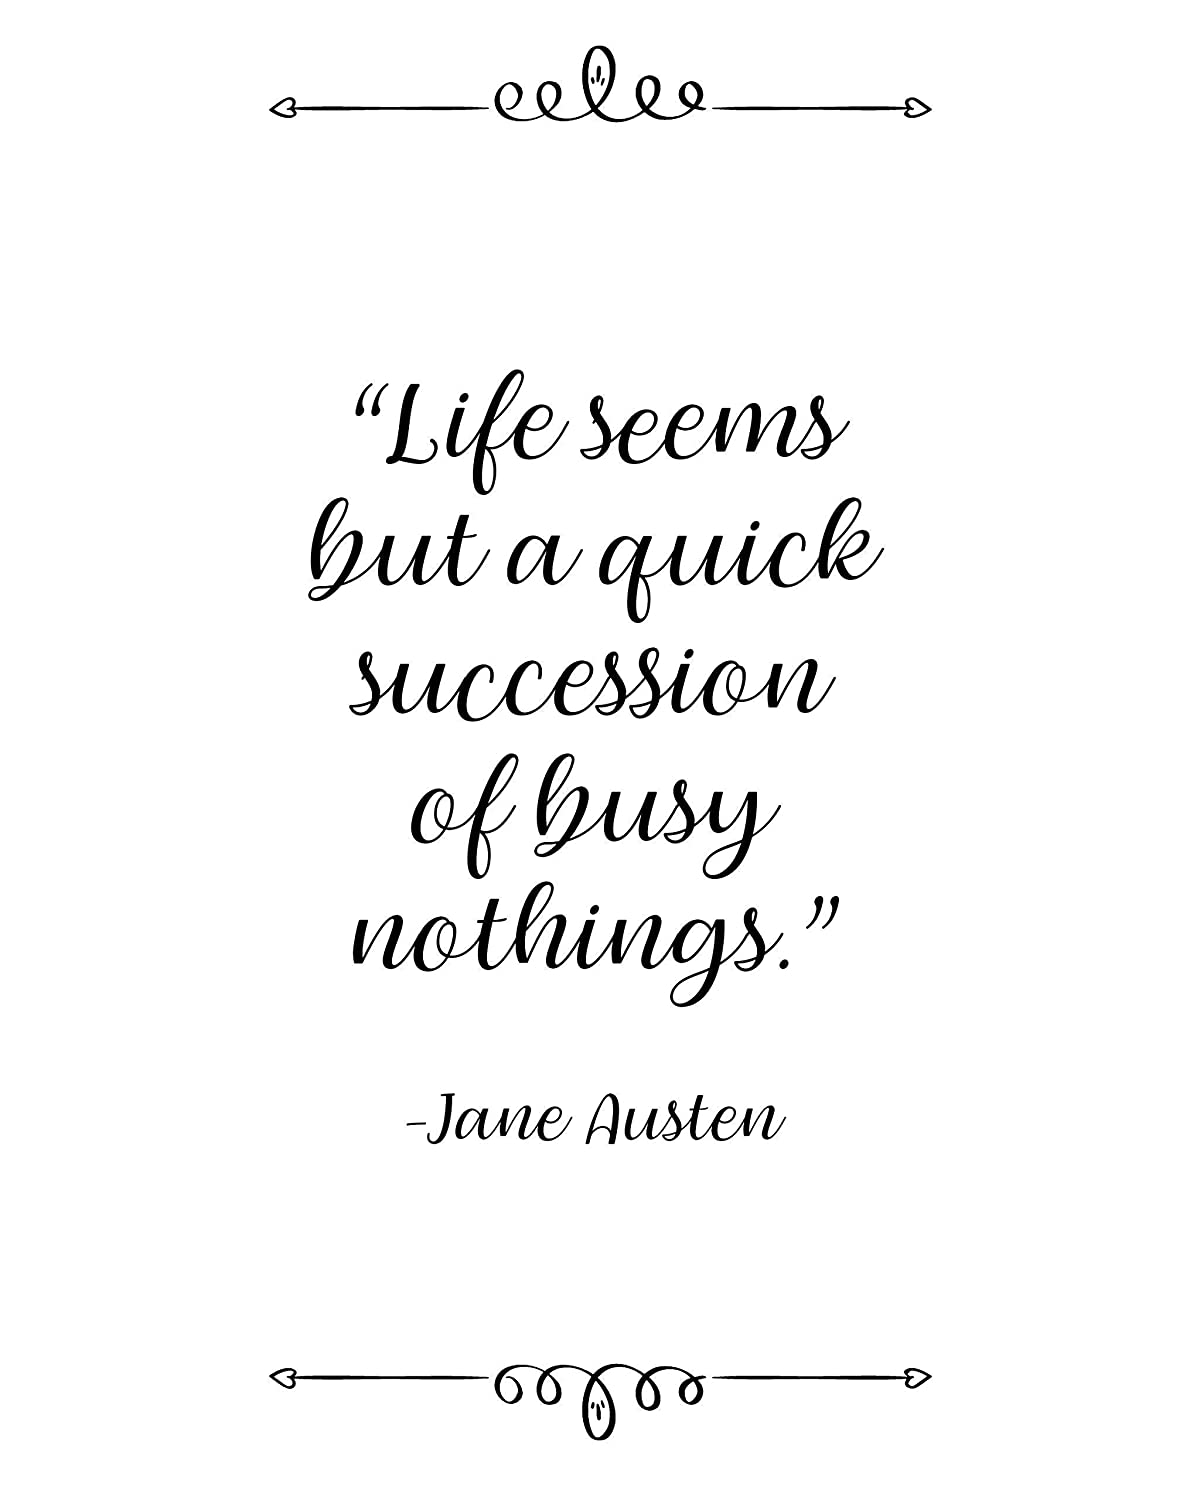 com jane austen life seems quote wall art poster prints